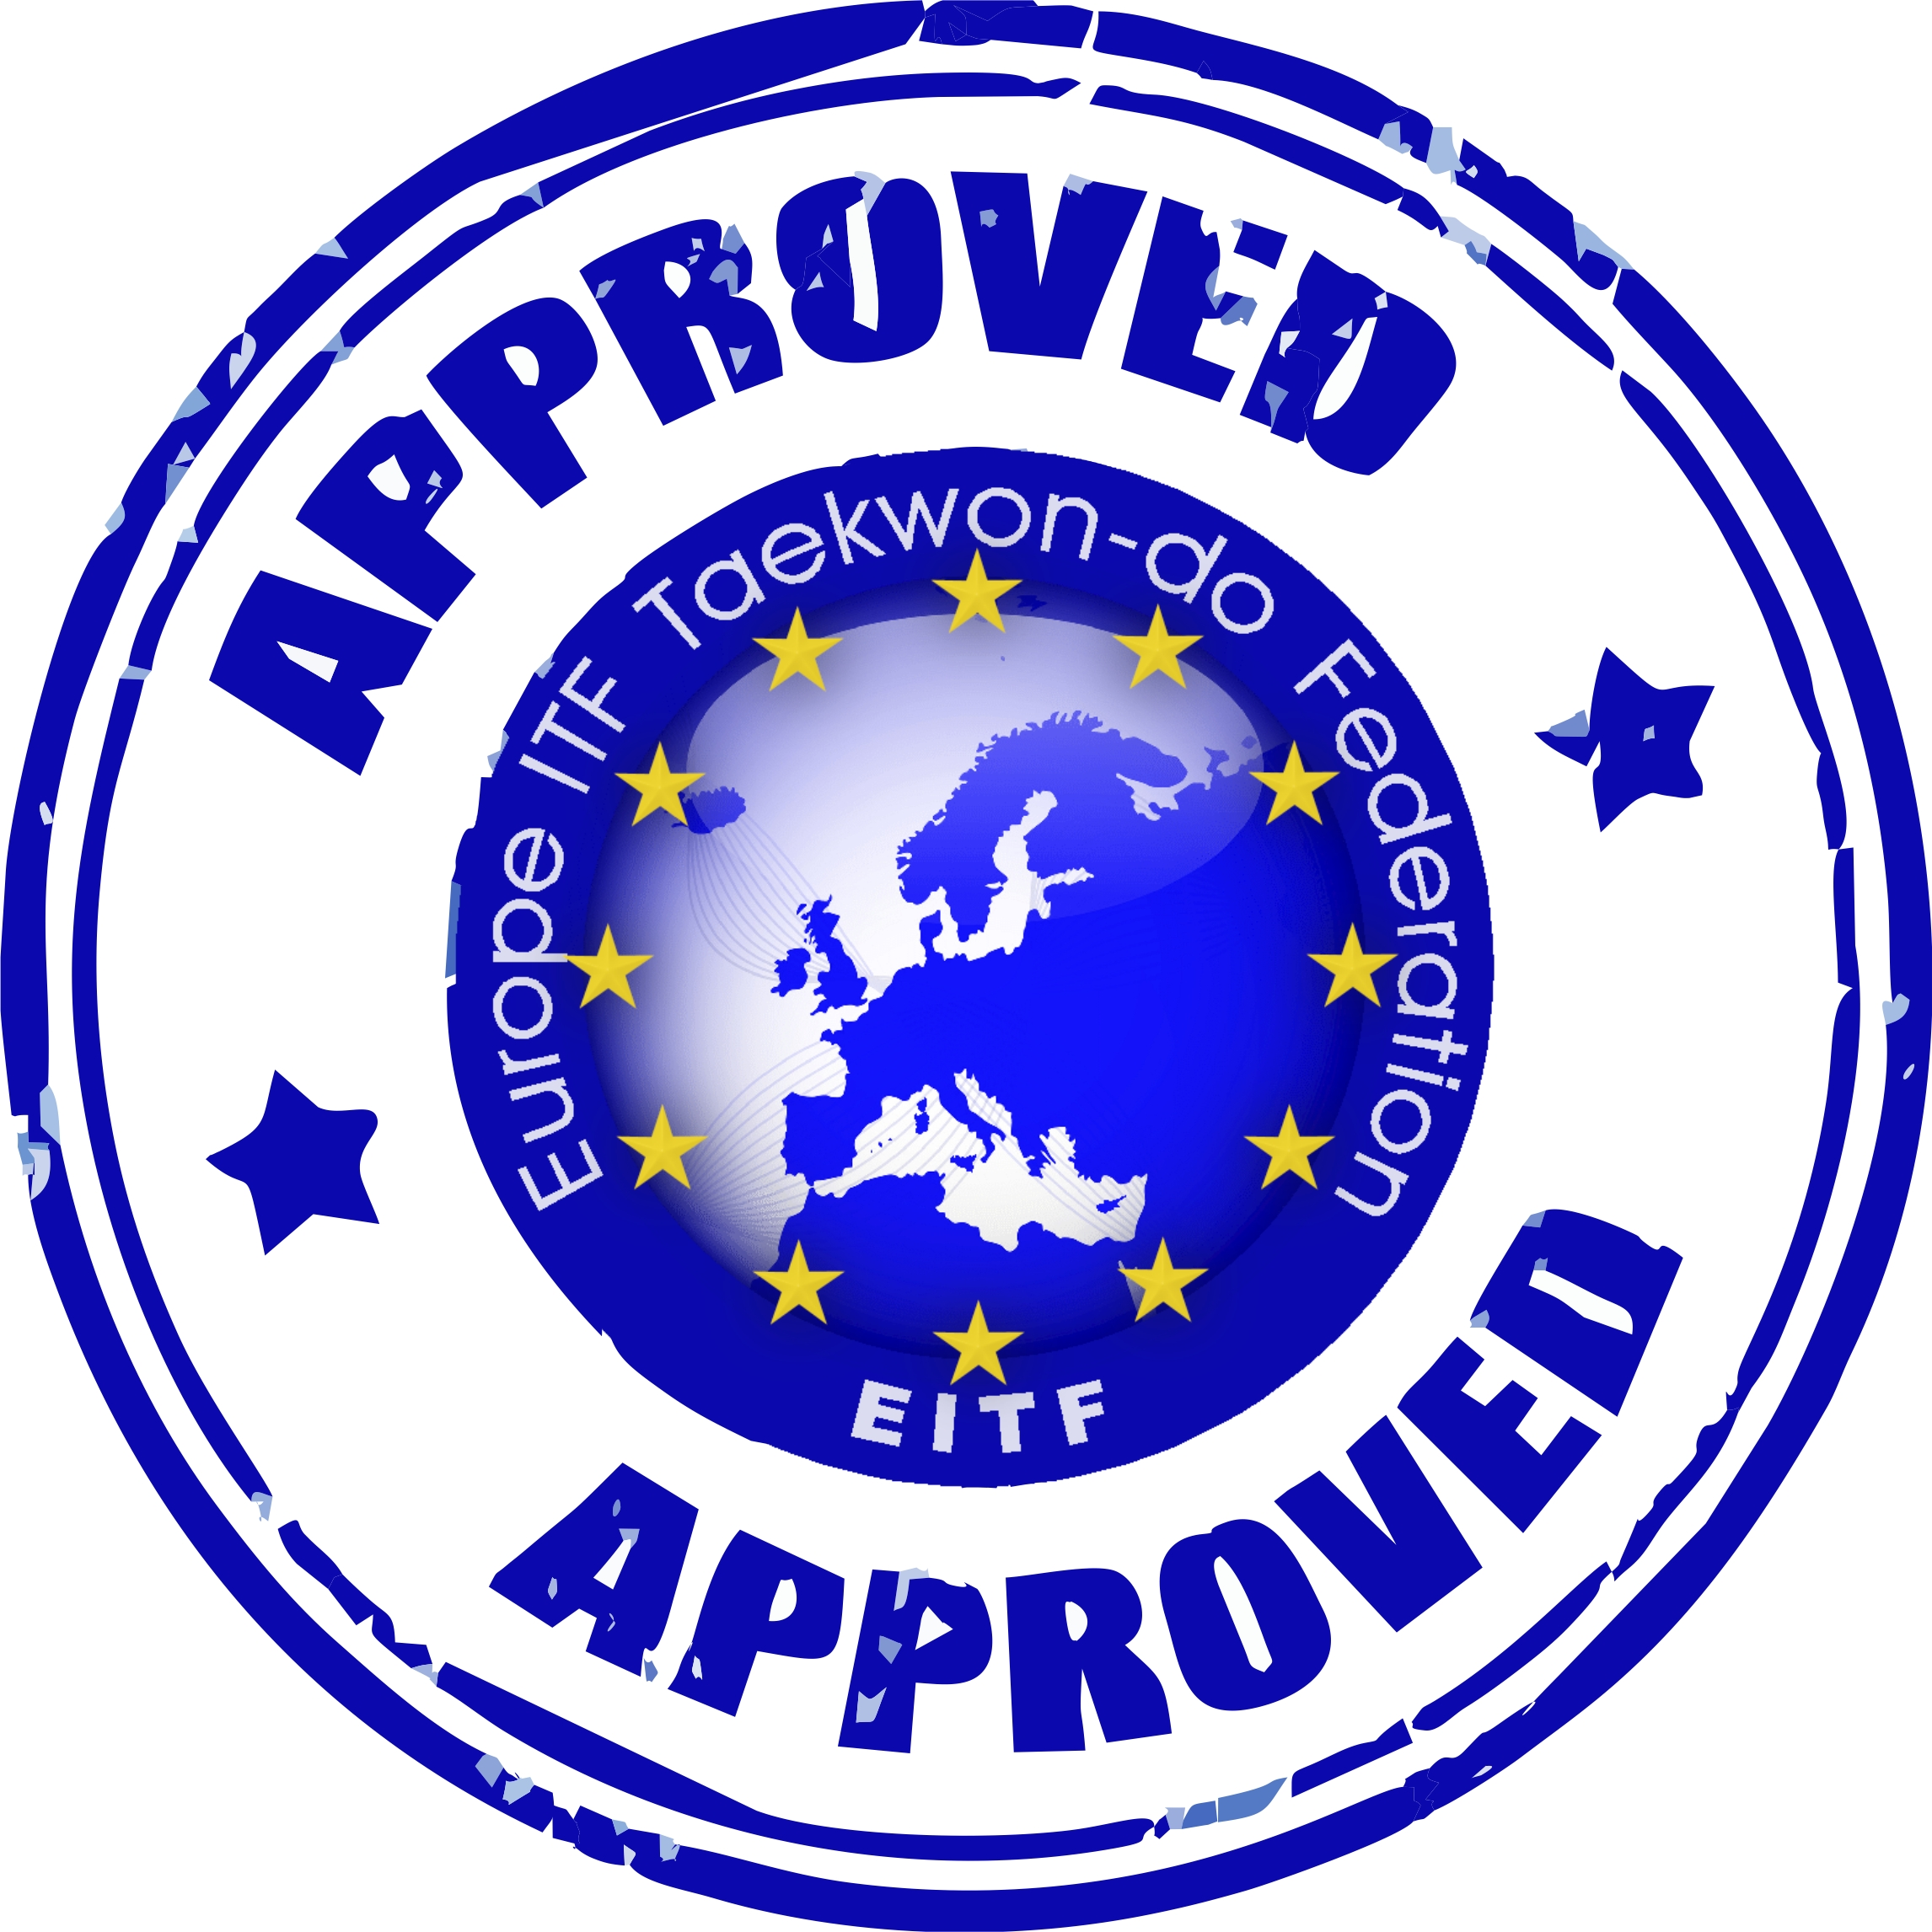 EITF Equipment approval programme